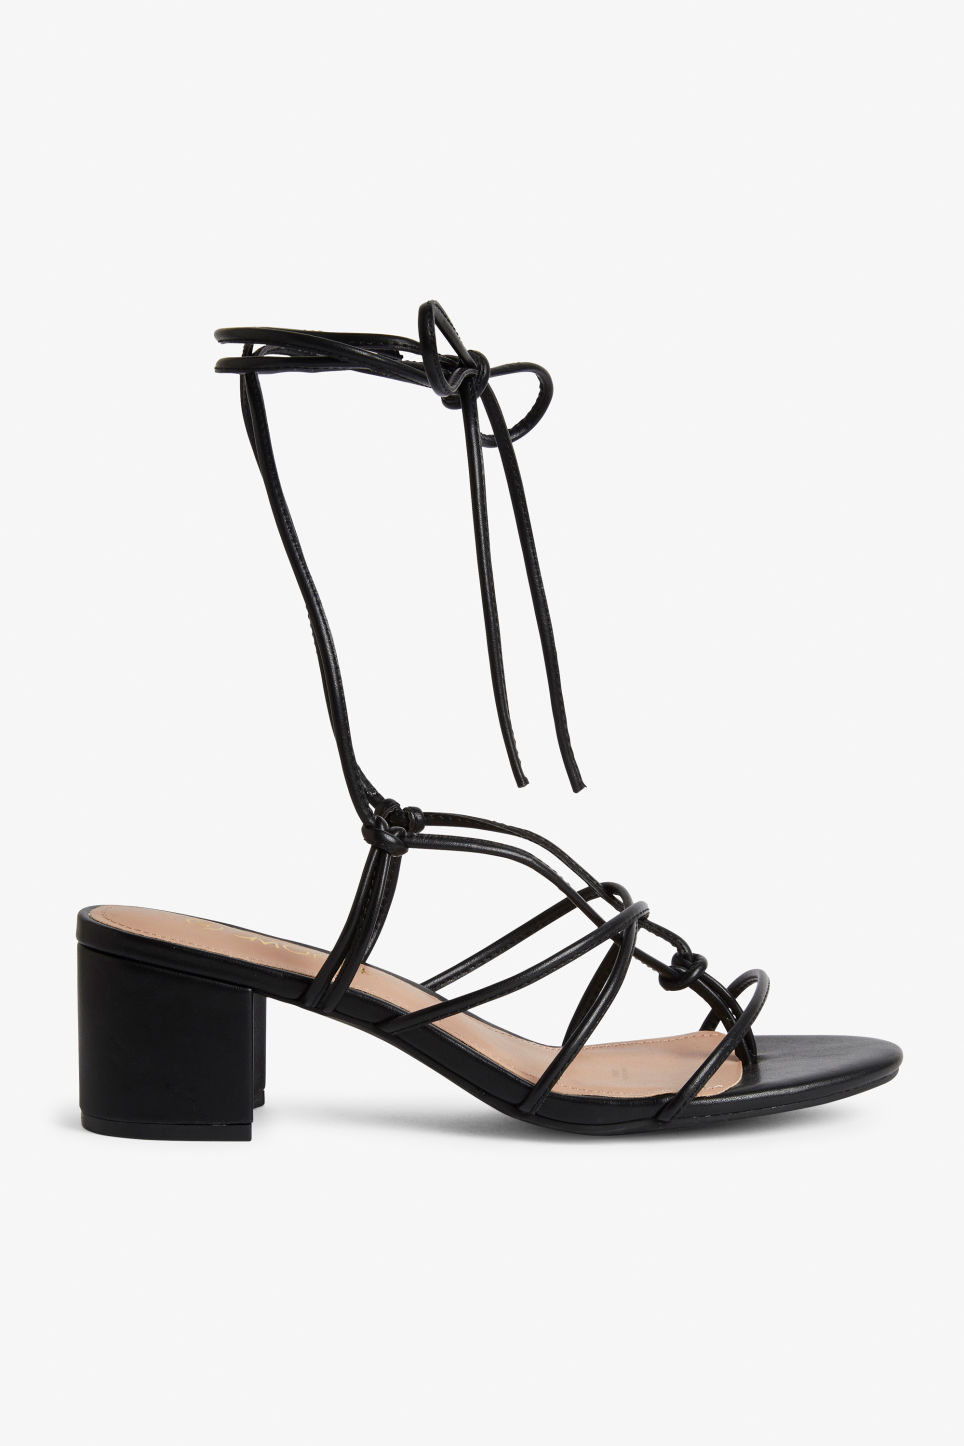 Detailed image of Monki heeled ankle-wrap sandal in black